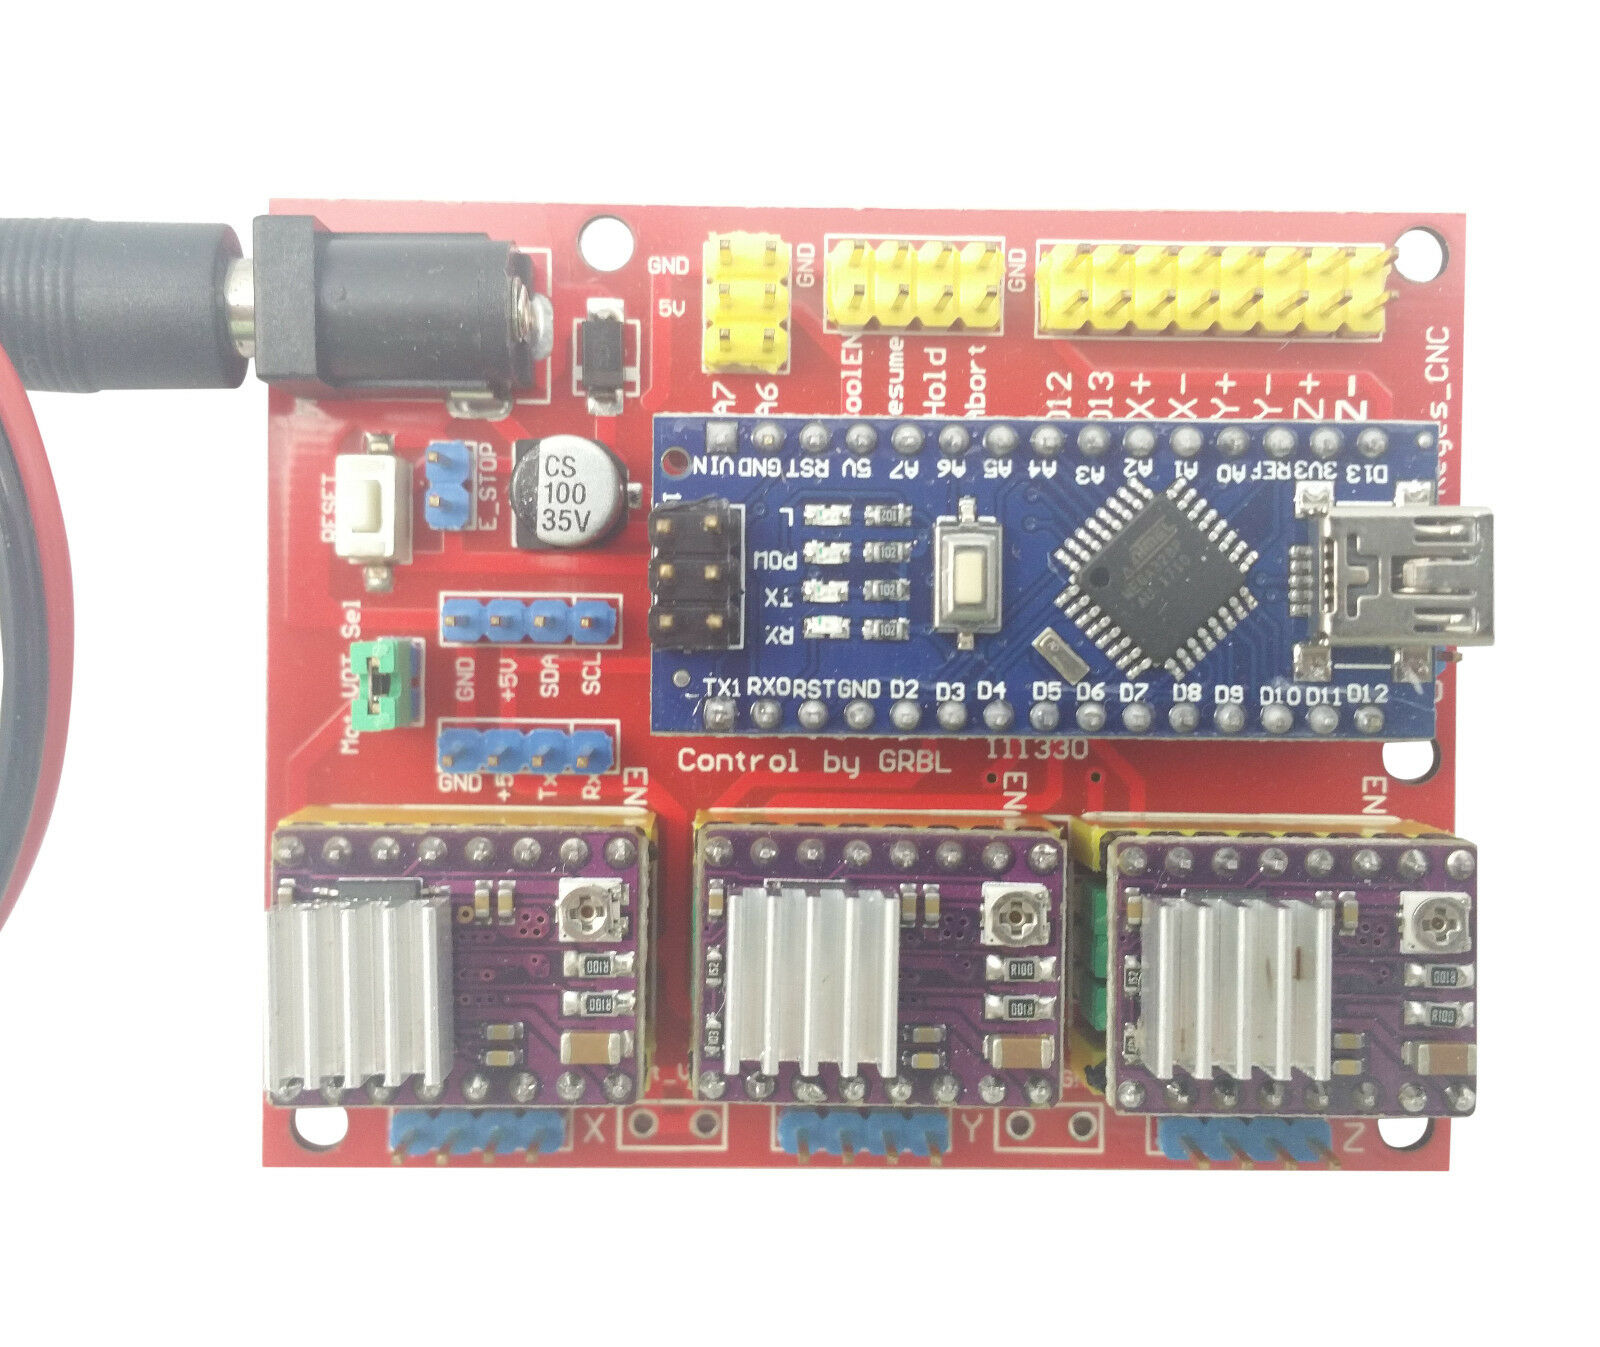 Details about Arduino Nano CNC Shield 3-Axis DRV8825 Stepper Driver Board  Complete Package Kit